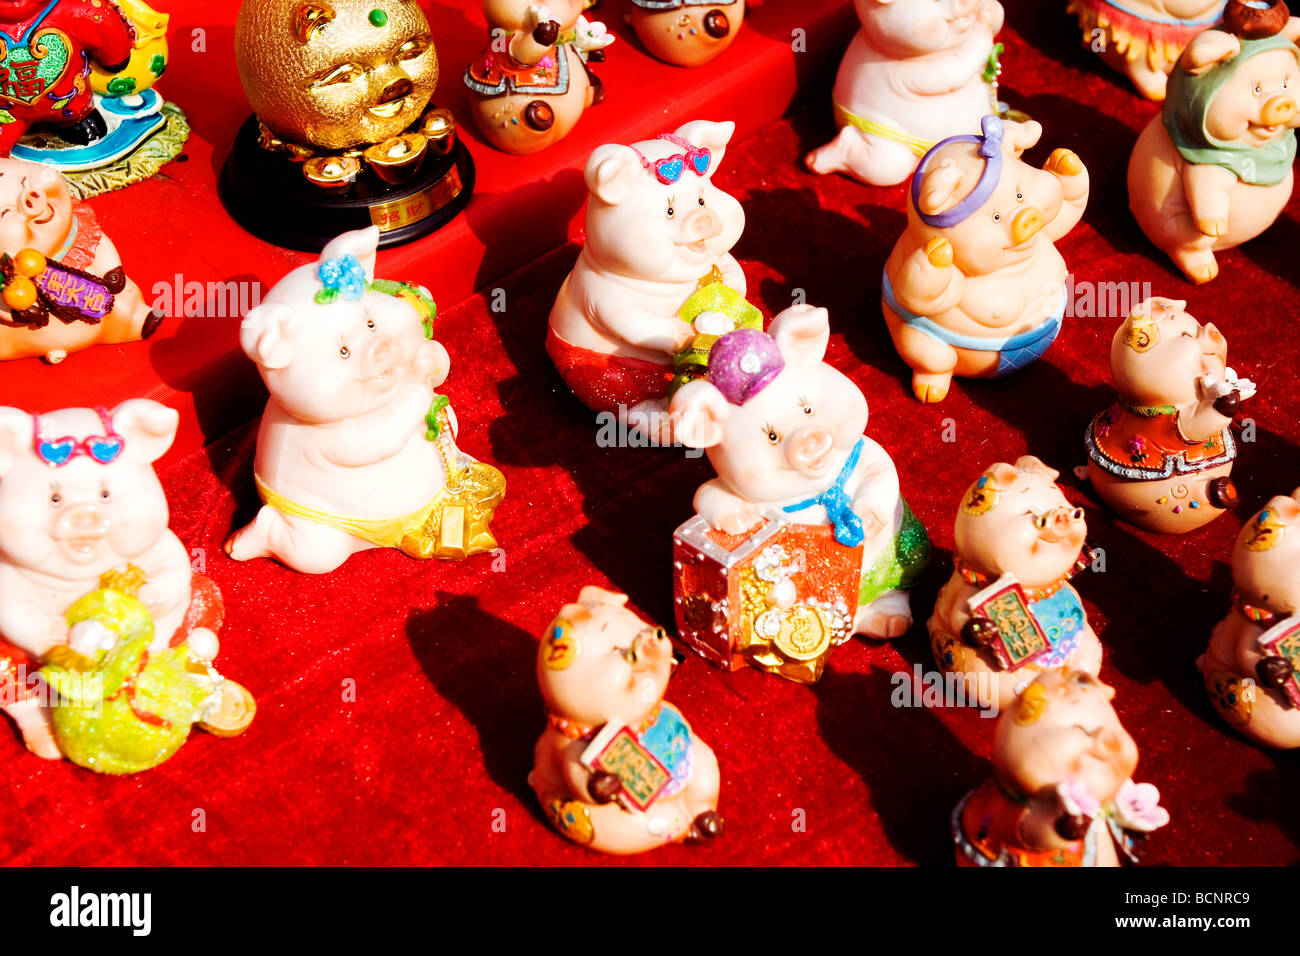 Pig shaped figurines sold during Dongyue Temple Fair during Spring Festival, Beijing, China - Stock Image